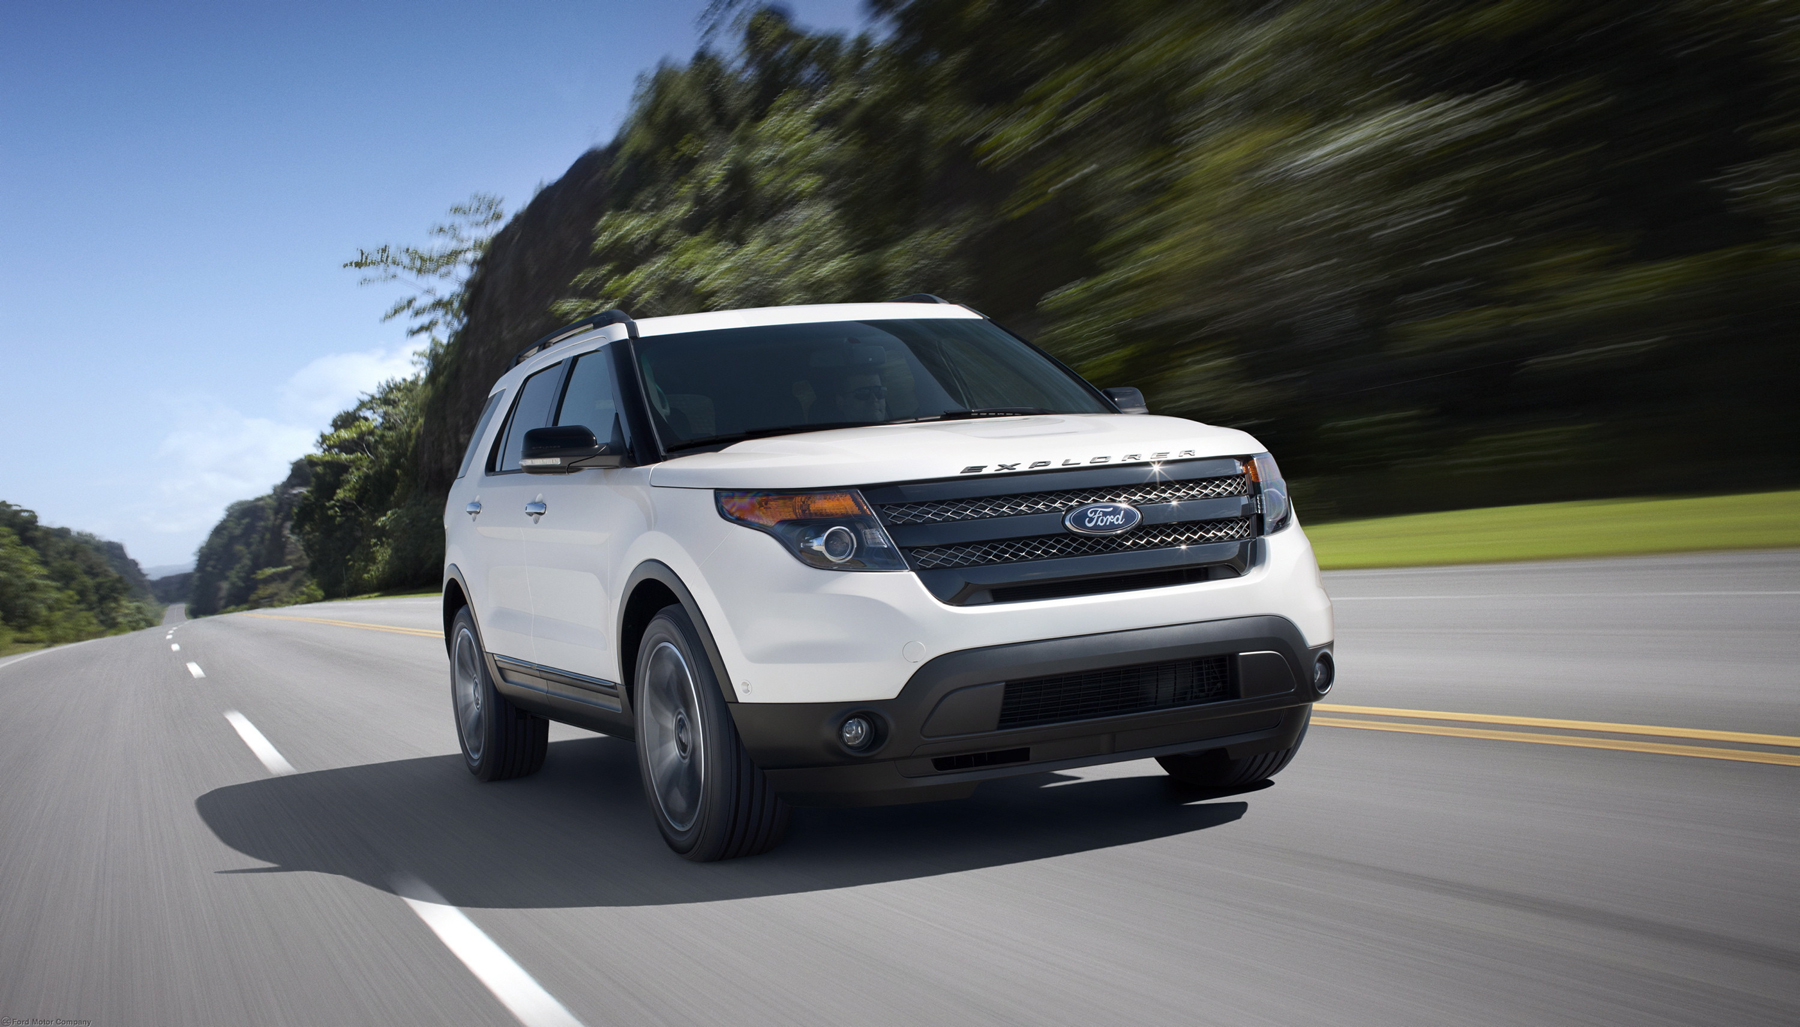 Manufacturer photo: New for 2013, the Ford Explorer Sport combines high performance with fuel efficiency, thanks to EcoBoost technology